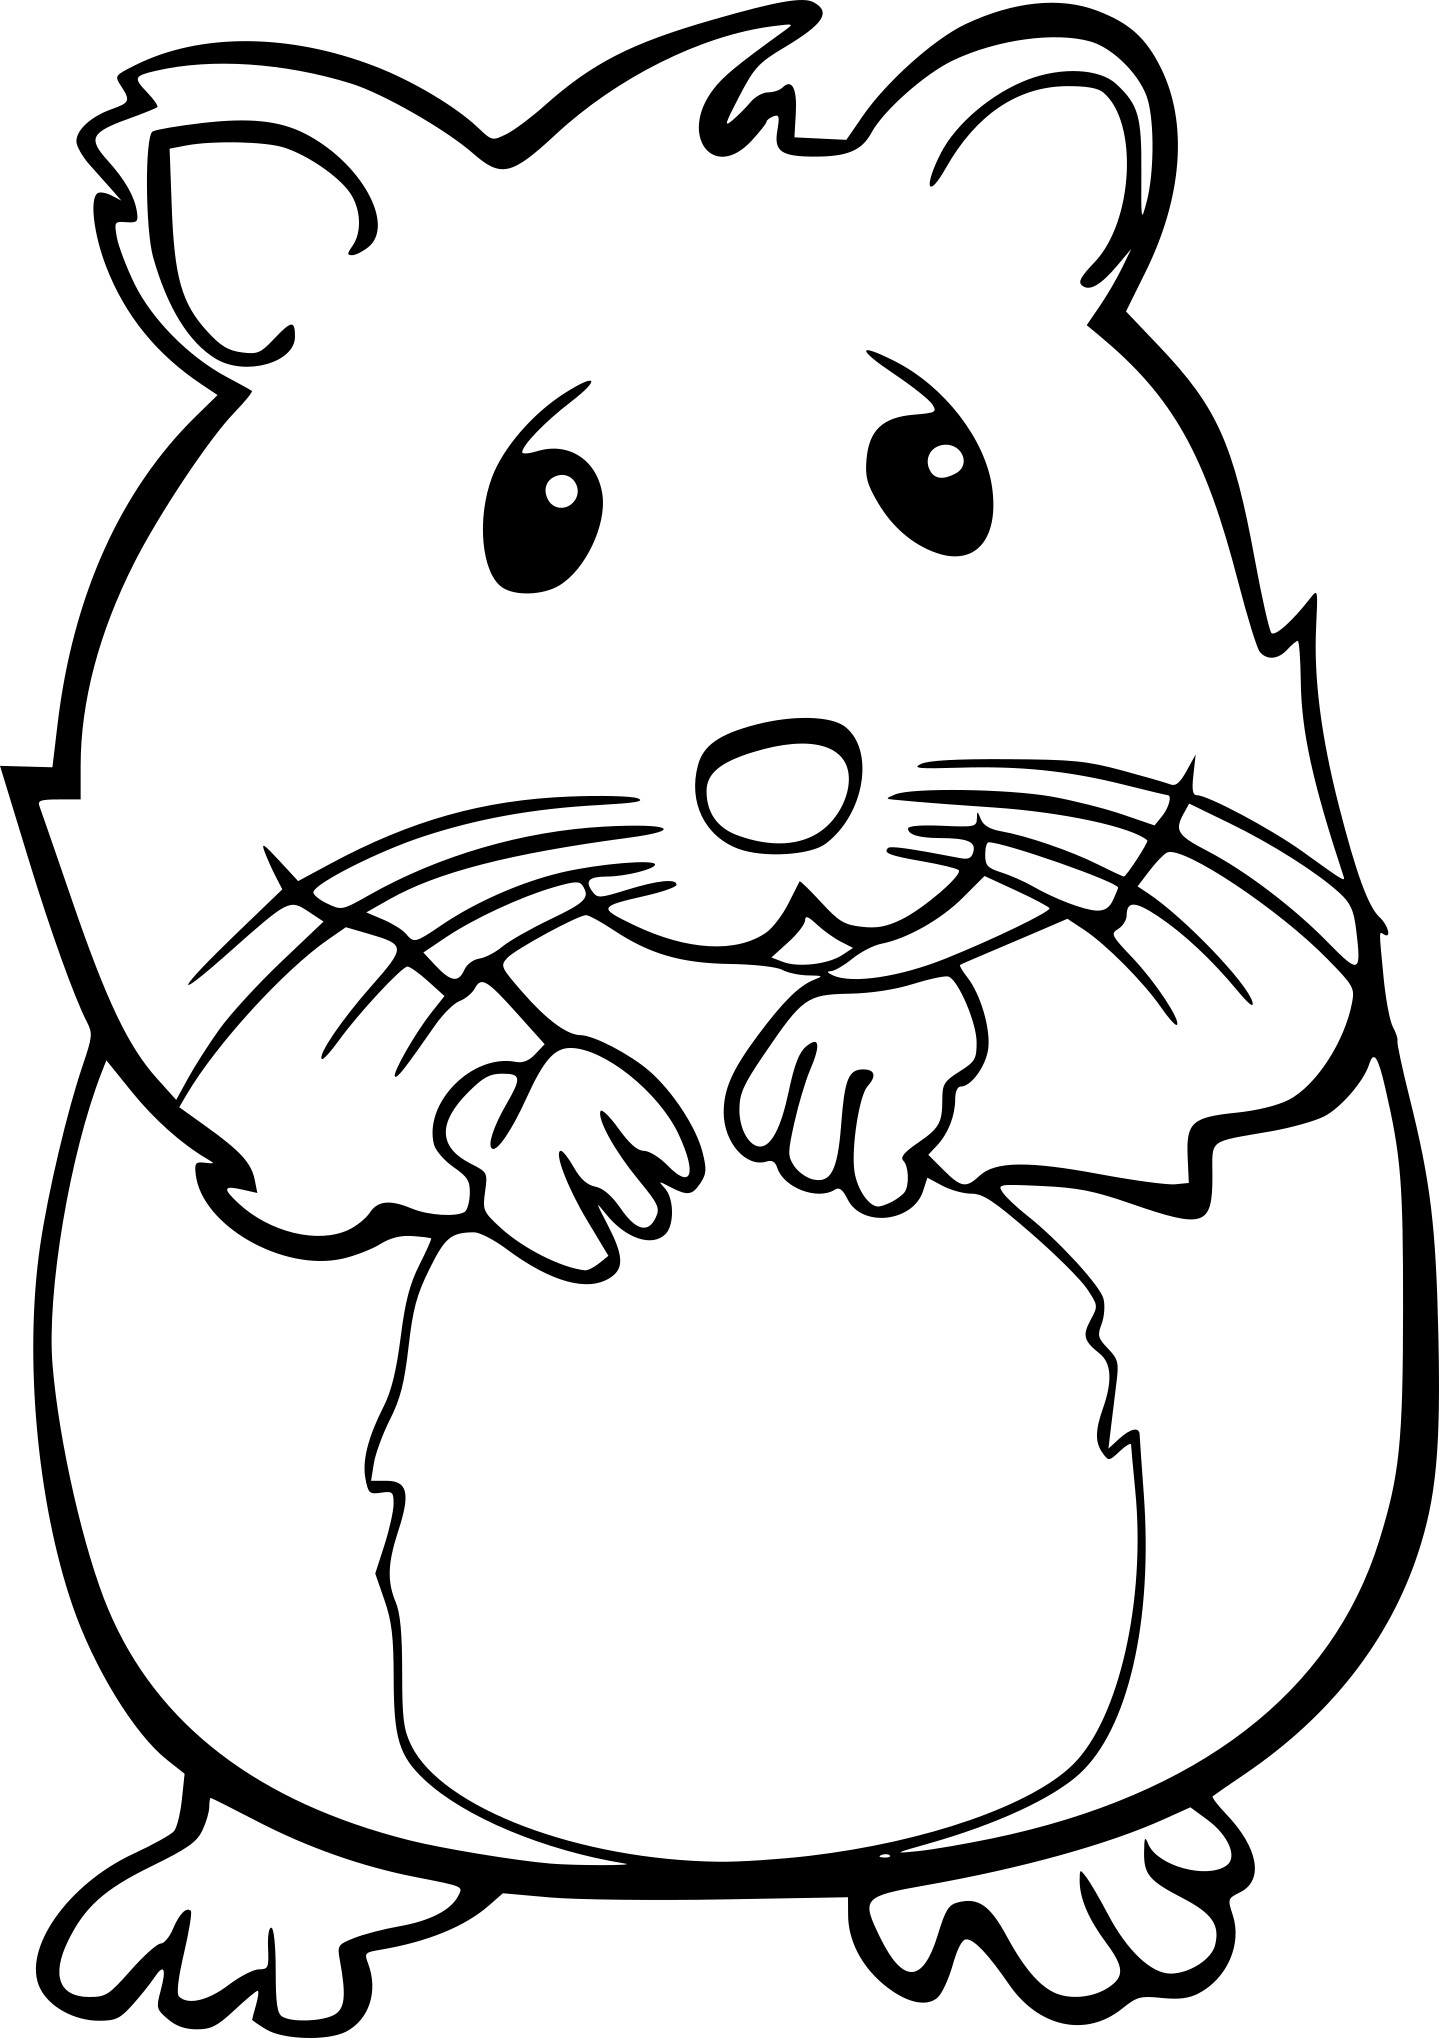 Coloriage Hamster Imprimer Best New Cars Review In The World